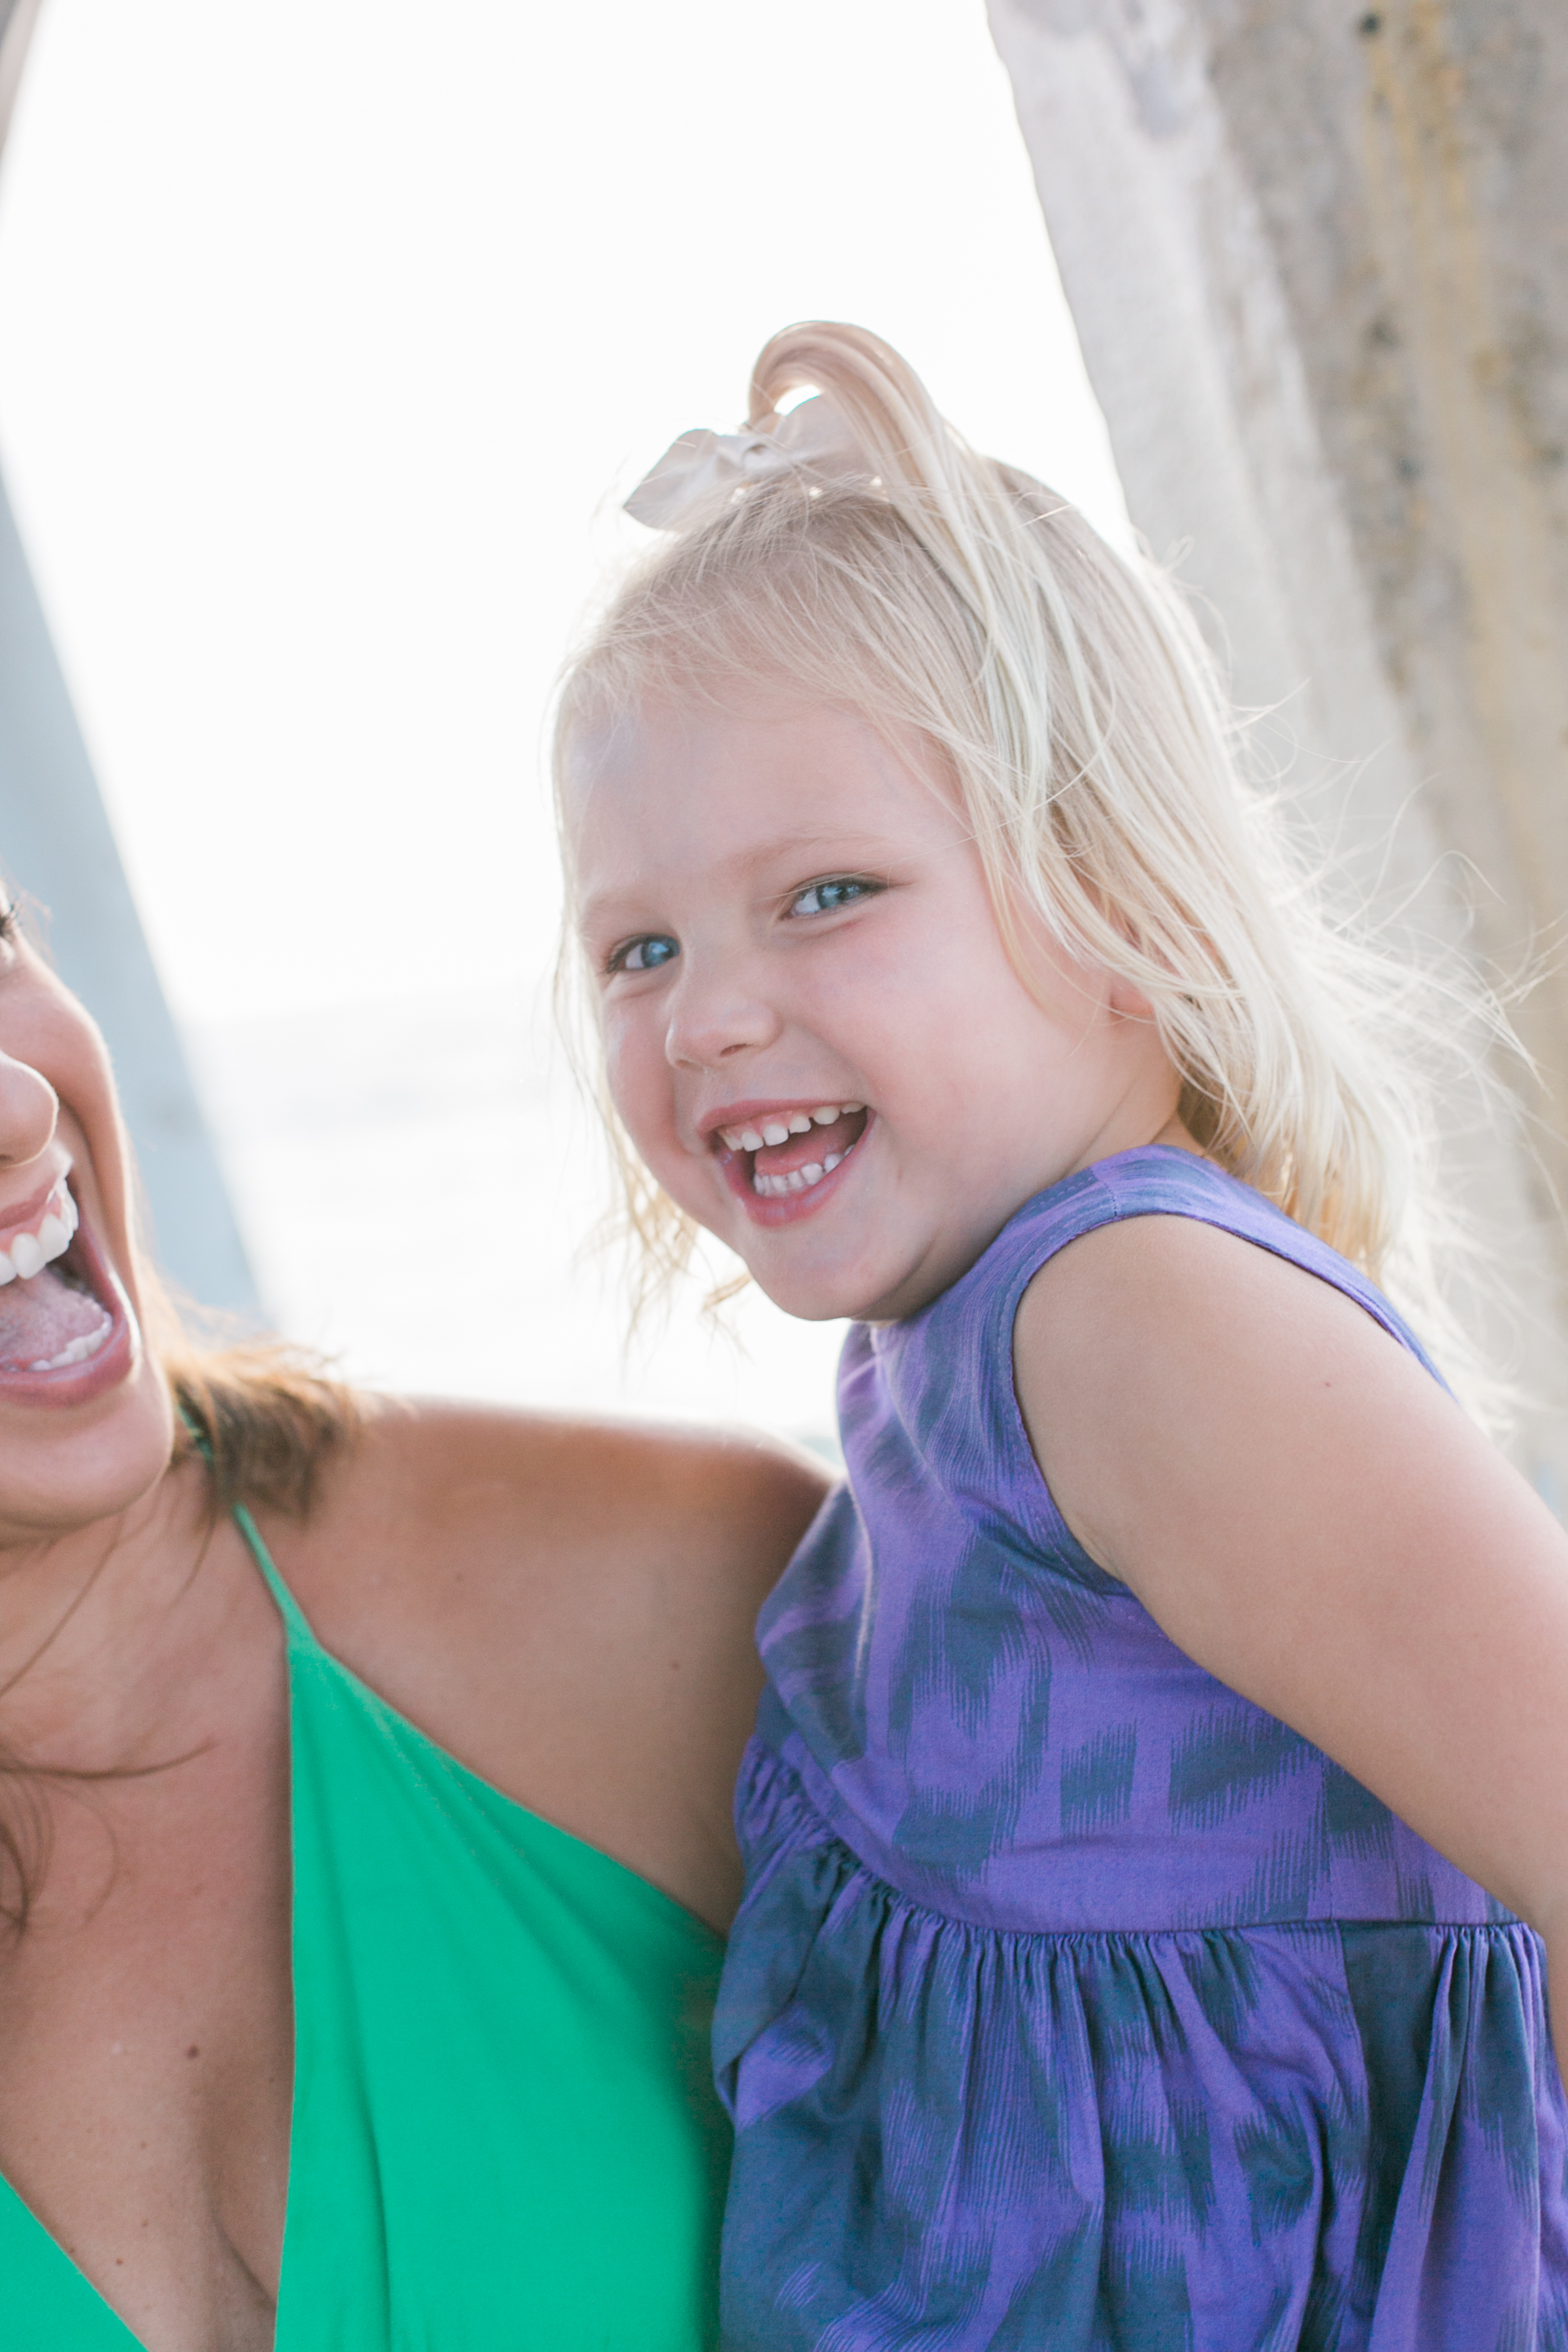 Manhattan_Beach_Children_Family_Portraits_004.jpg